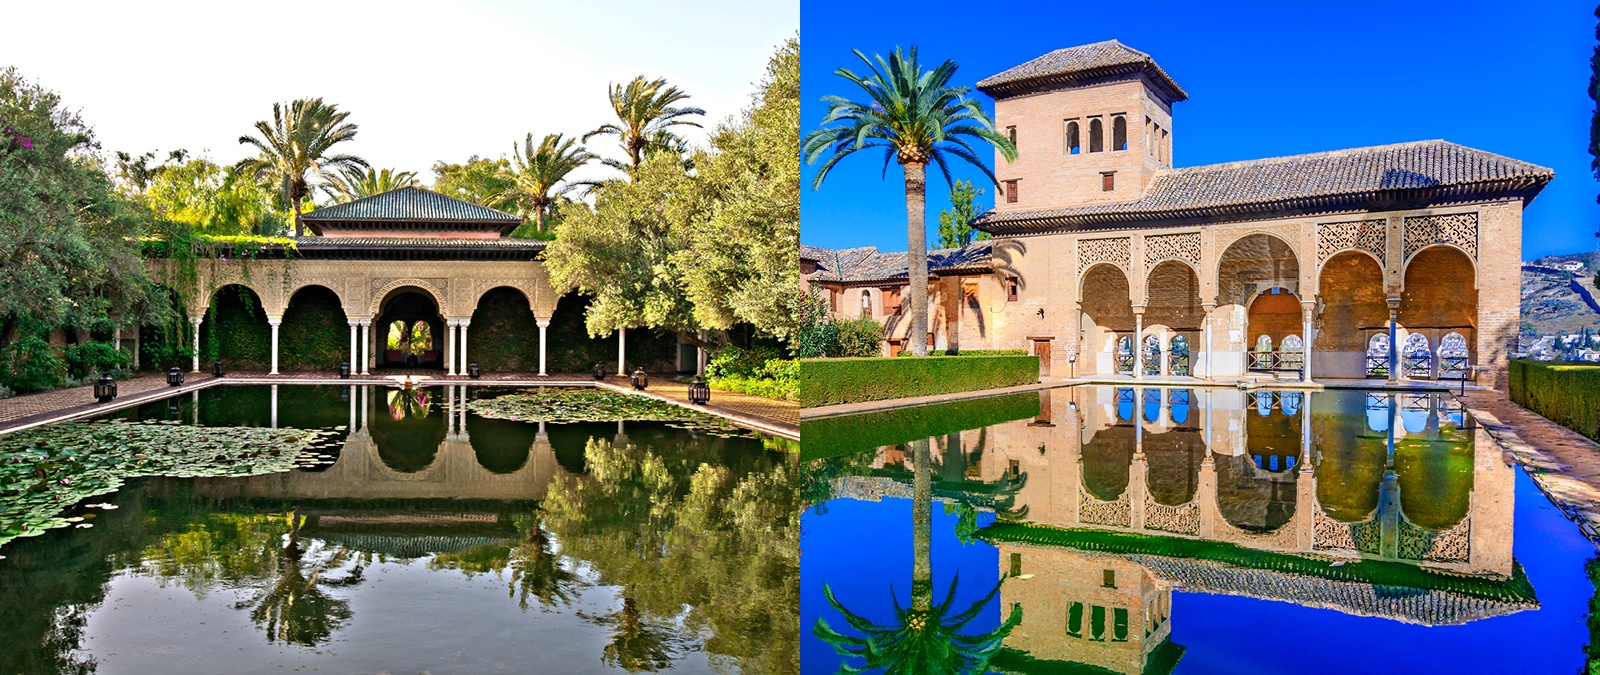 "<b><em>Left</em>: <a href=&quot;http://www.christiesrealestate.com/eng/sales/detail/170-l-78232-f1306040421700036/sale-villa-marrakesh-marrakesh-mh-40000&quot;target=&quot;_blank&quot;>Villa Marrakesh</a></br></b>This palatial villa in Marrakesh, Morocco, was built as an ode to one of Spain's historic architectural treasures, the Alhambra. The pavilion and reflecting pool echo the design of the Alhambra's Torre de las Damas (Ladies' Tower).</br></br><b><em>Right</em>: The Alhambra</br></b> The vast fortress and palace complex was built between the 9th and the 14th centuries. Its name, which means ""the red one"" in Arabic, is thought to be derived from the reddish color of the gravel and clay bricks which form the outer ramparts."